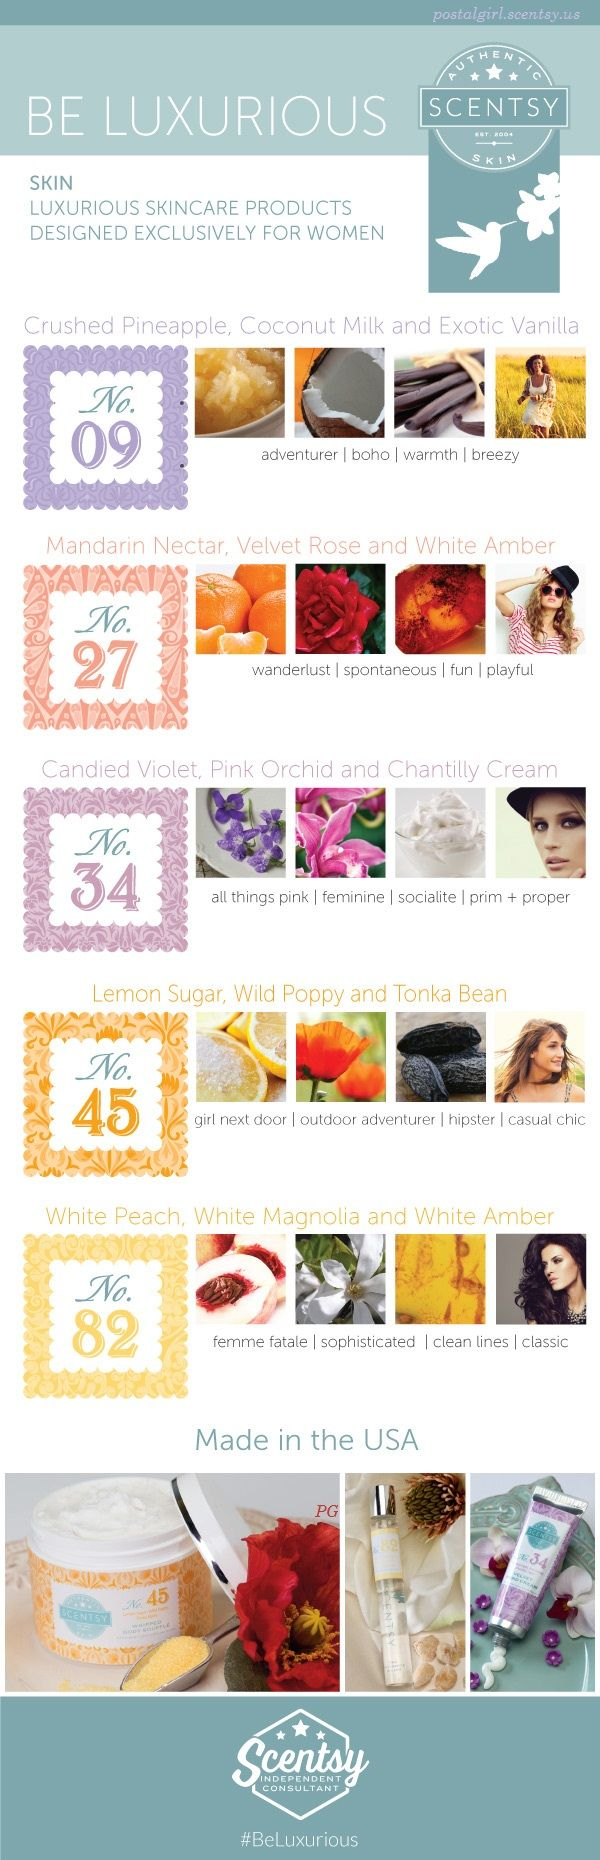 Scentsy Fall 2015 Skin line Scent descriptions available September 1 at https://postalgirl.scentsy.us